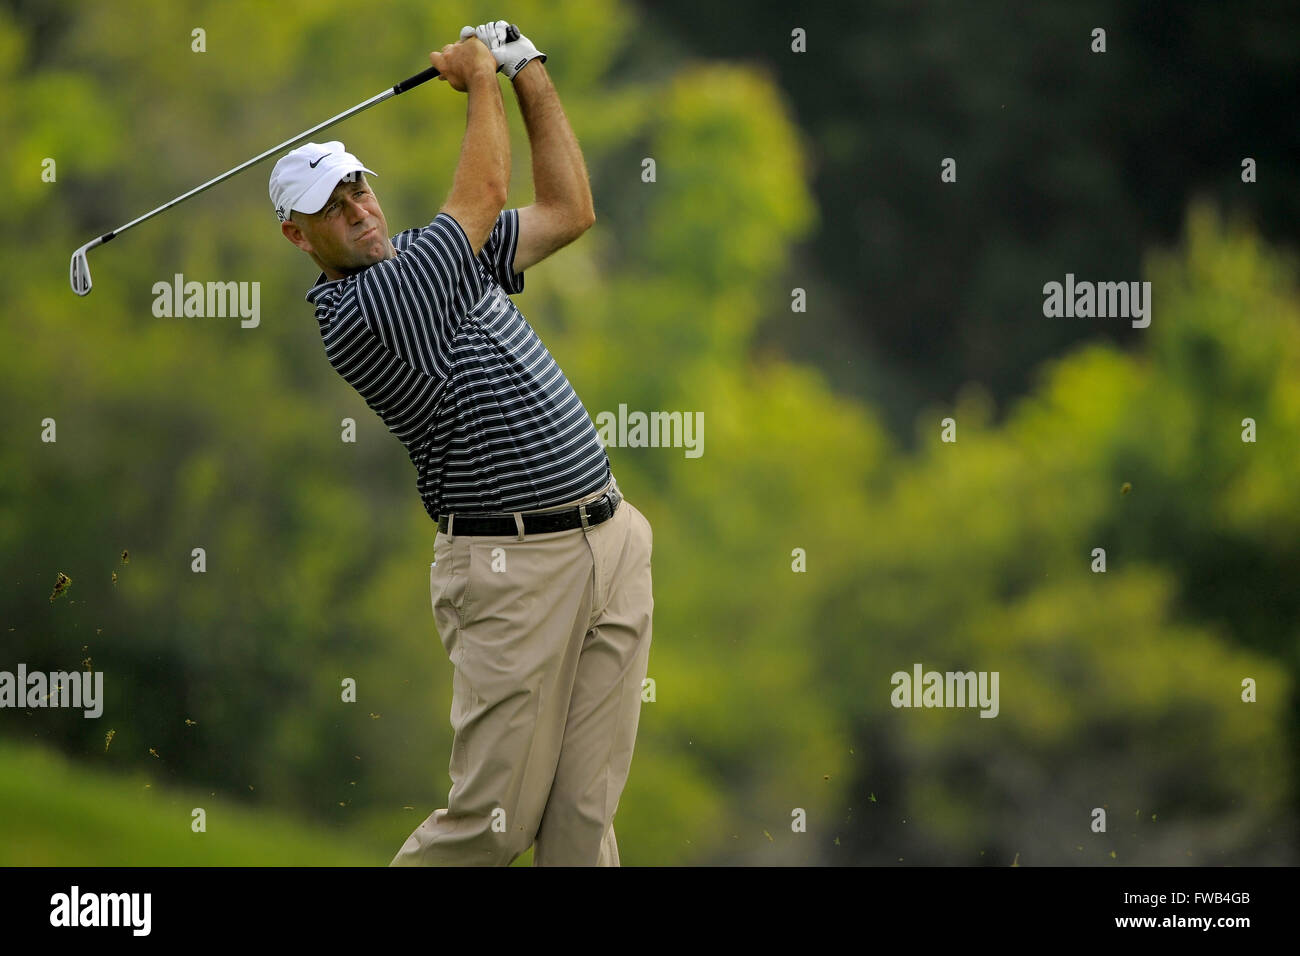 Ponte Vedra Beach, Florida, USA. 9th May, 2008. Stewart Cink hits his second shot on the 14th hole during the second - Stock Image